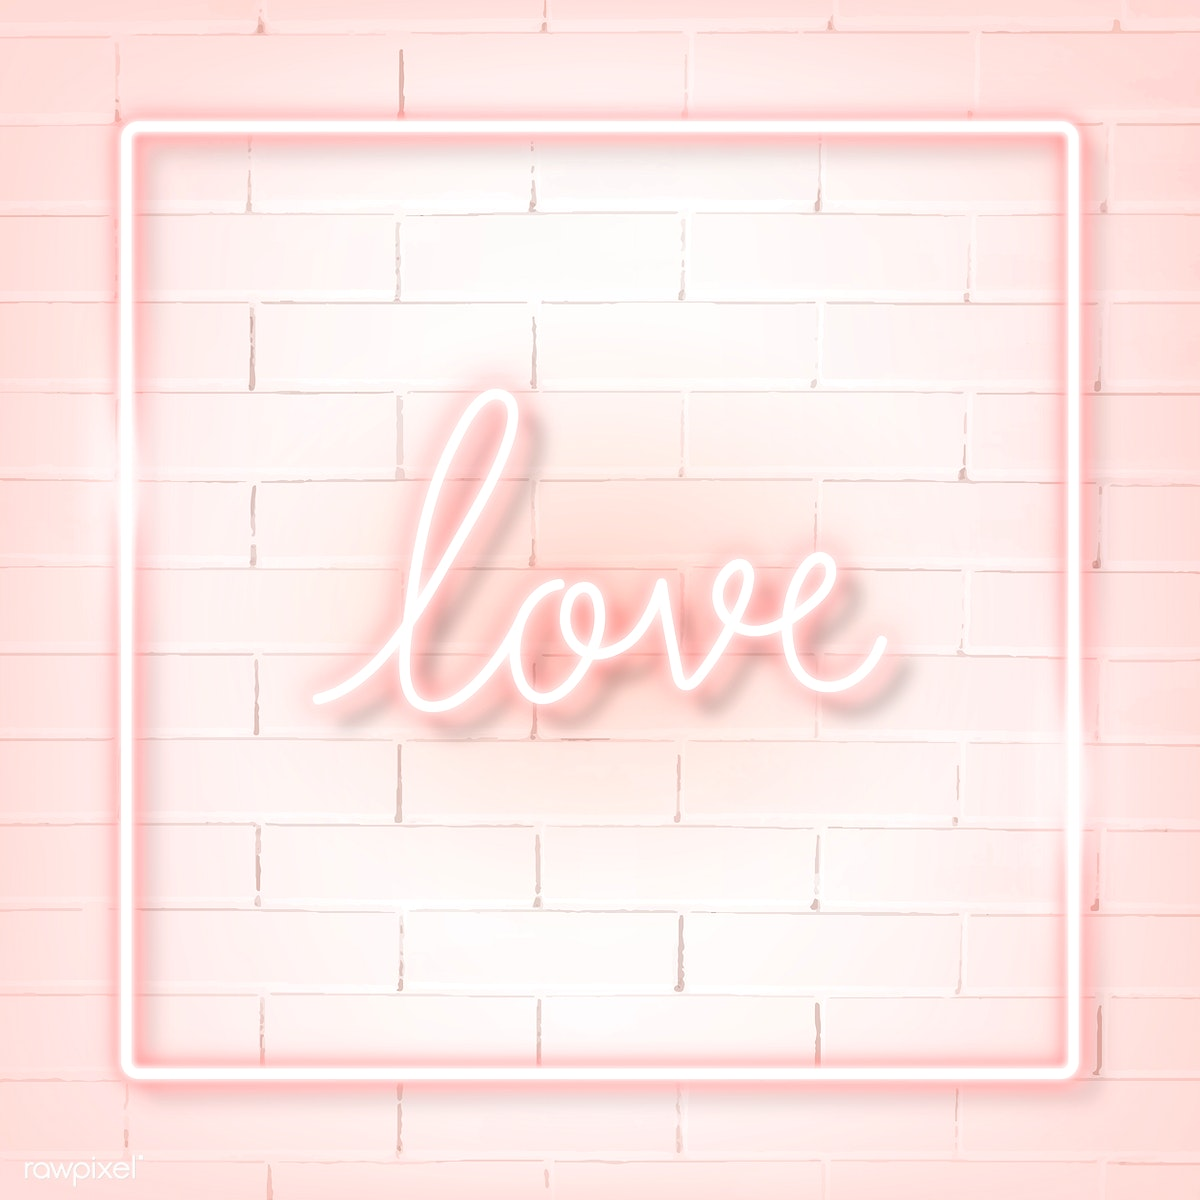 Download premium vector of Square pink neon frame on a white brick wall